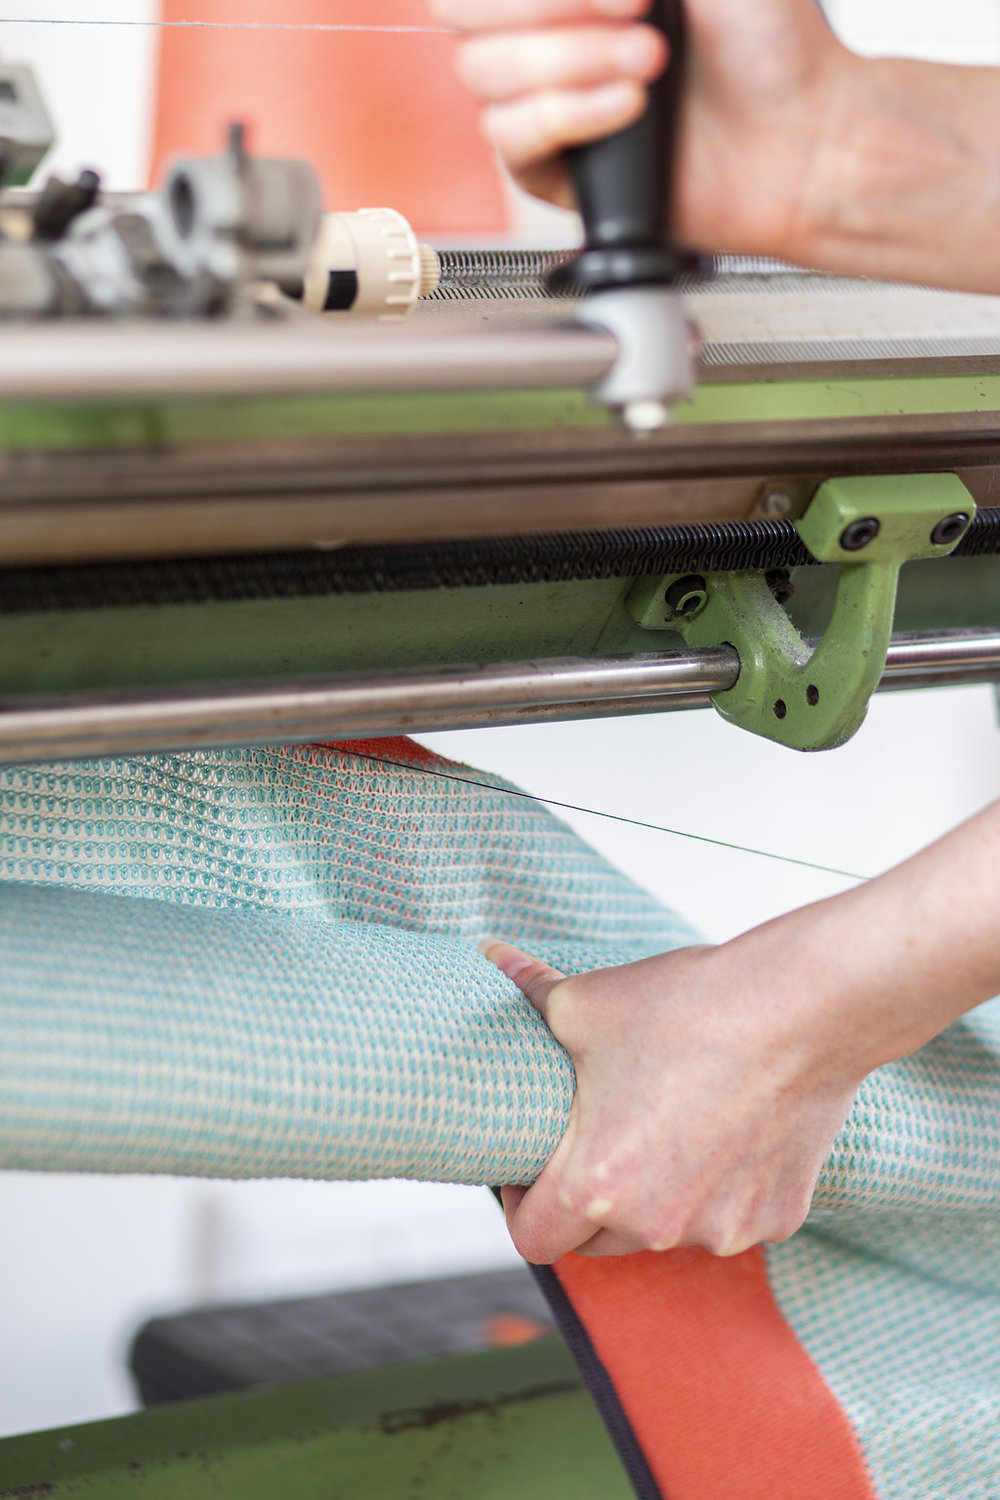 Taking the scarf off the knitting machine.